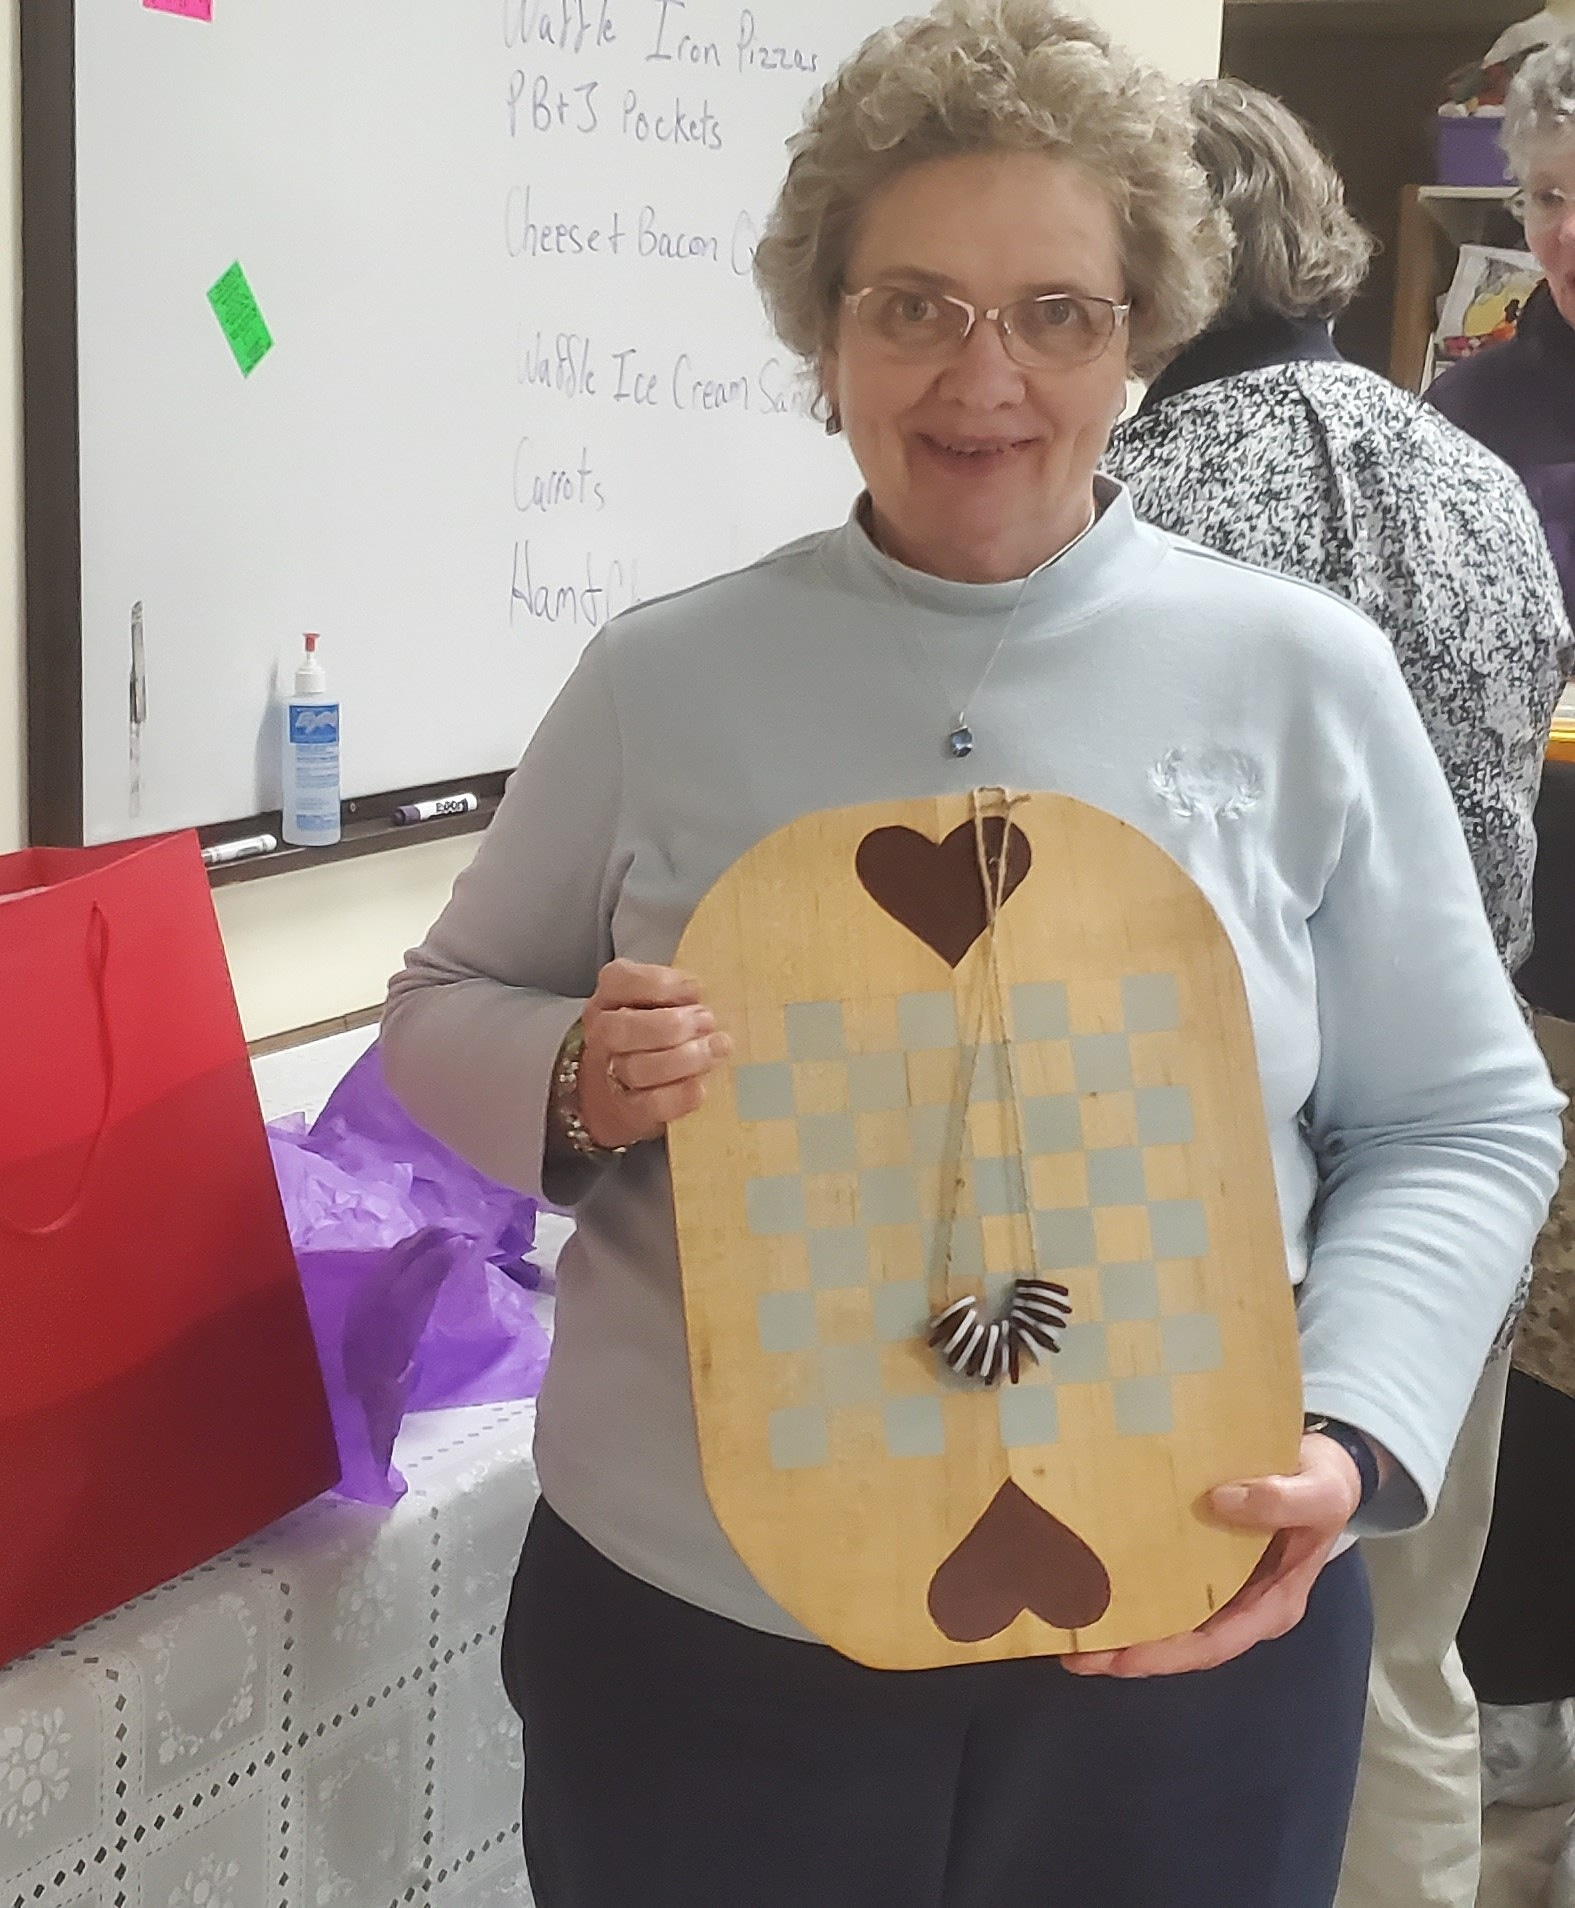 Congratulations to Sue Hallam as winner of our February Ladies Night Out prize drawing recipient. Sue won a solid wood folk art game set beautifully handcrafted by assistant librarian Judy.